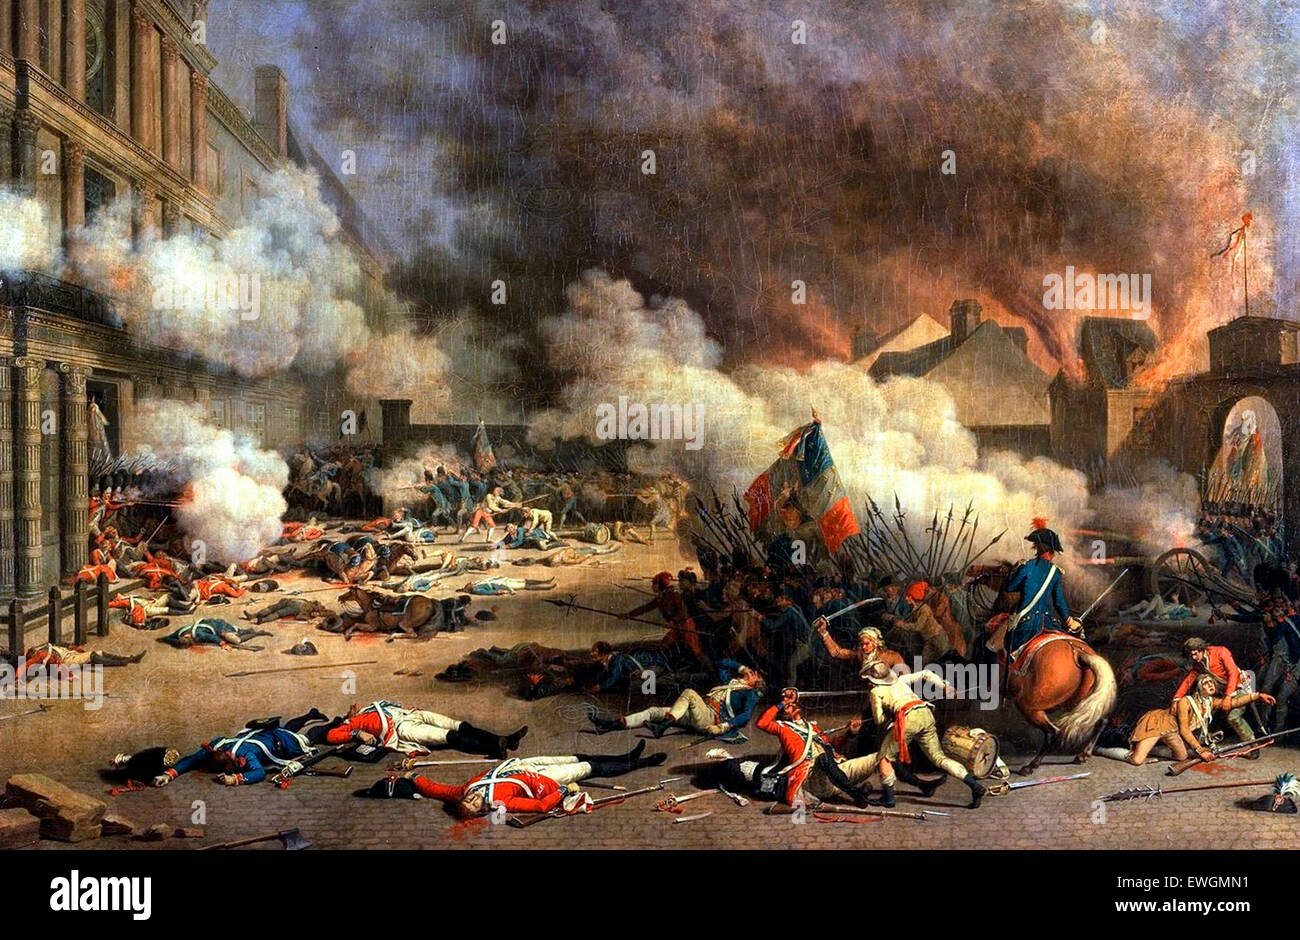 Depiction of the storming of the Tuileries Palace on 10 August 1792   Jean Duplessis-Bertaux - Stock Image